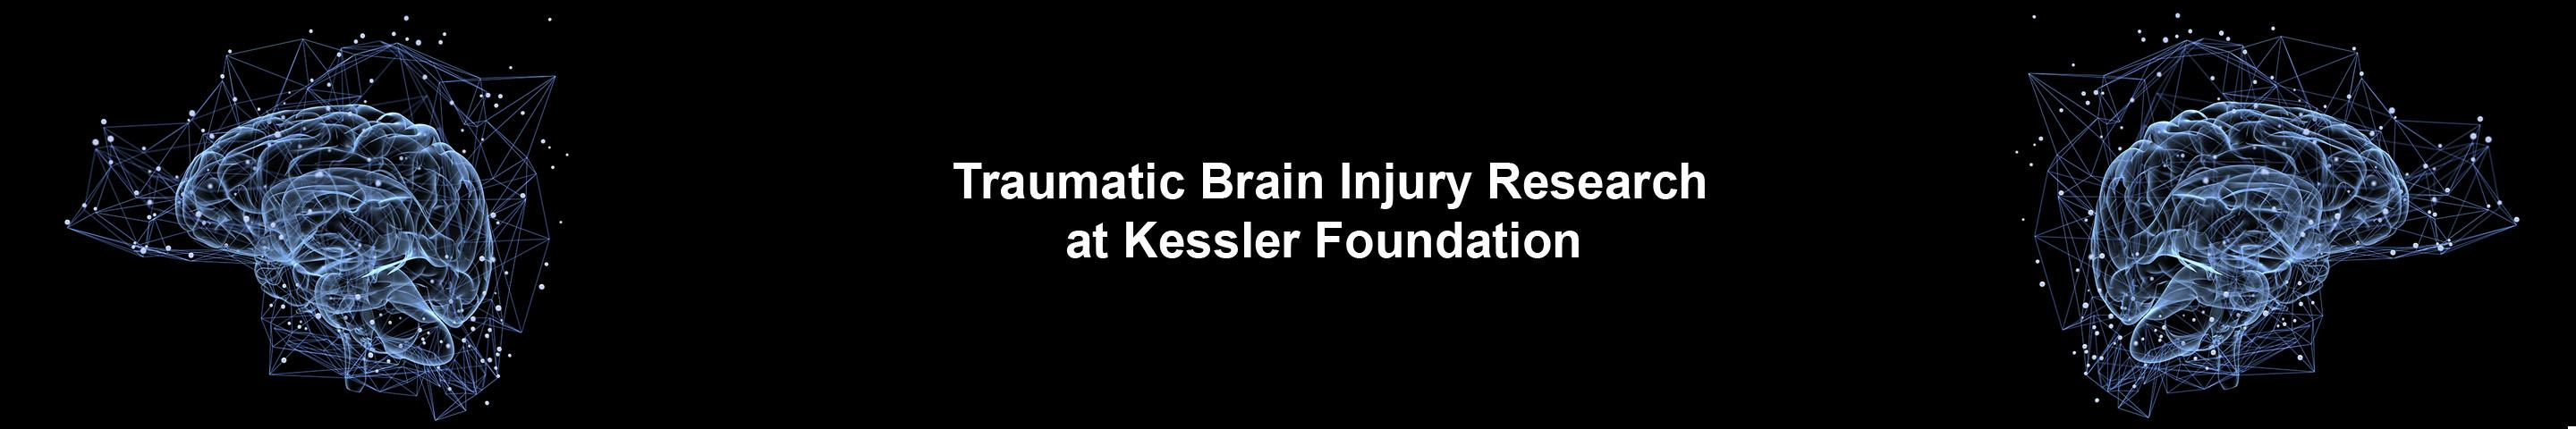 TBI Research at Kessler Foundation banner